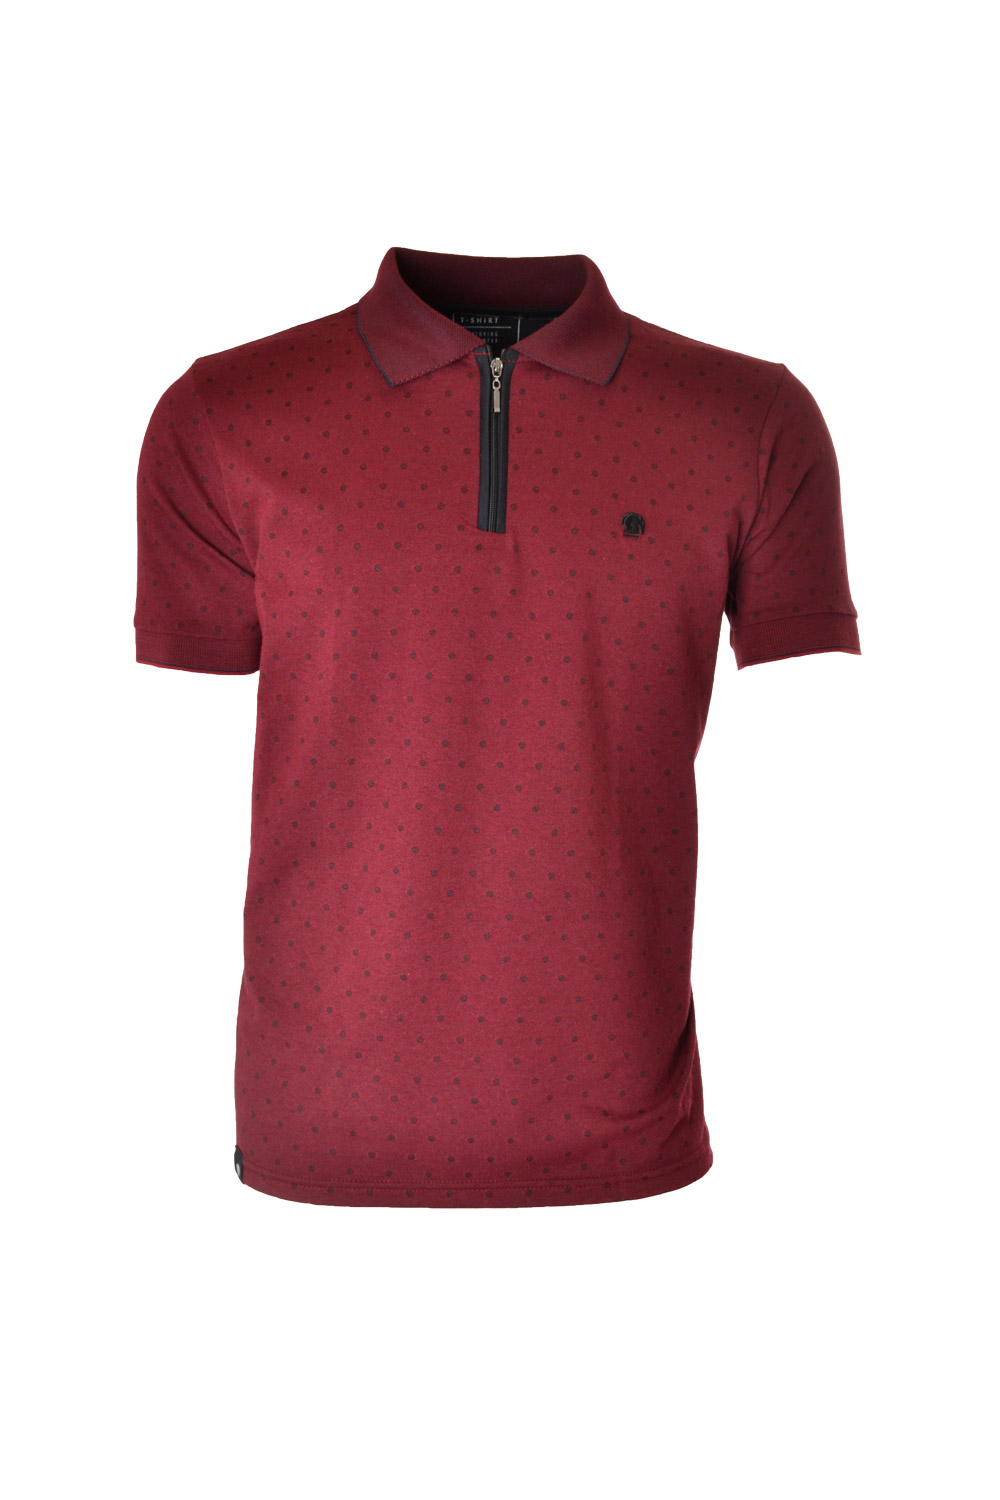 POLO MC CASUAL SLIM POLIALGODAO FIO TINTO JACQUARD BORDO